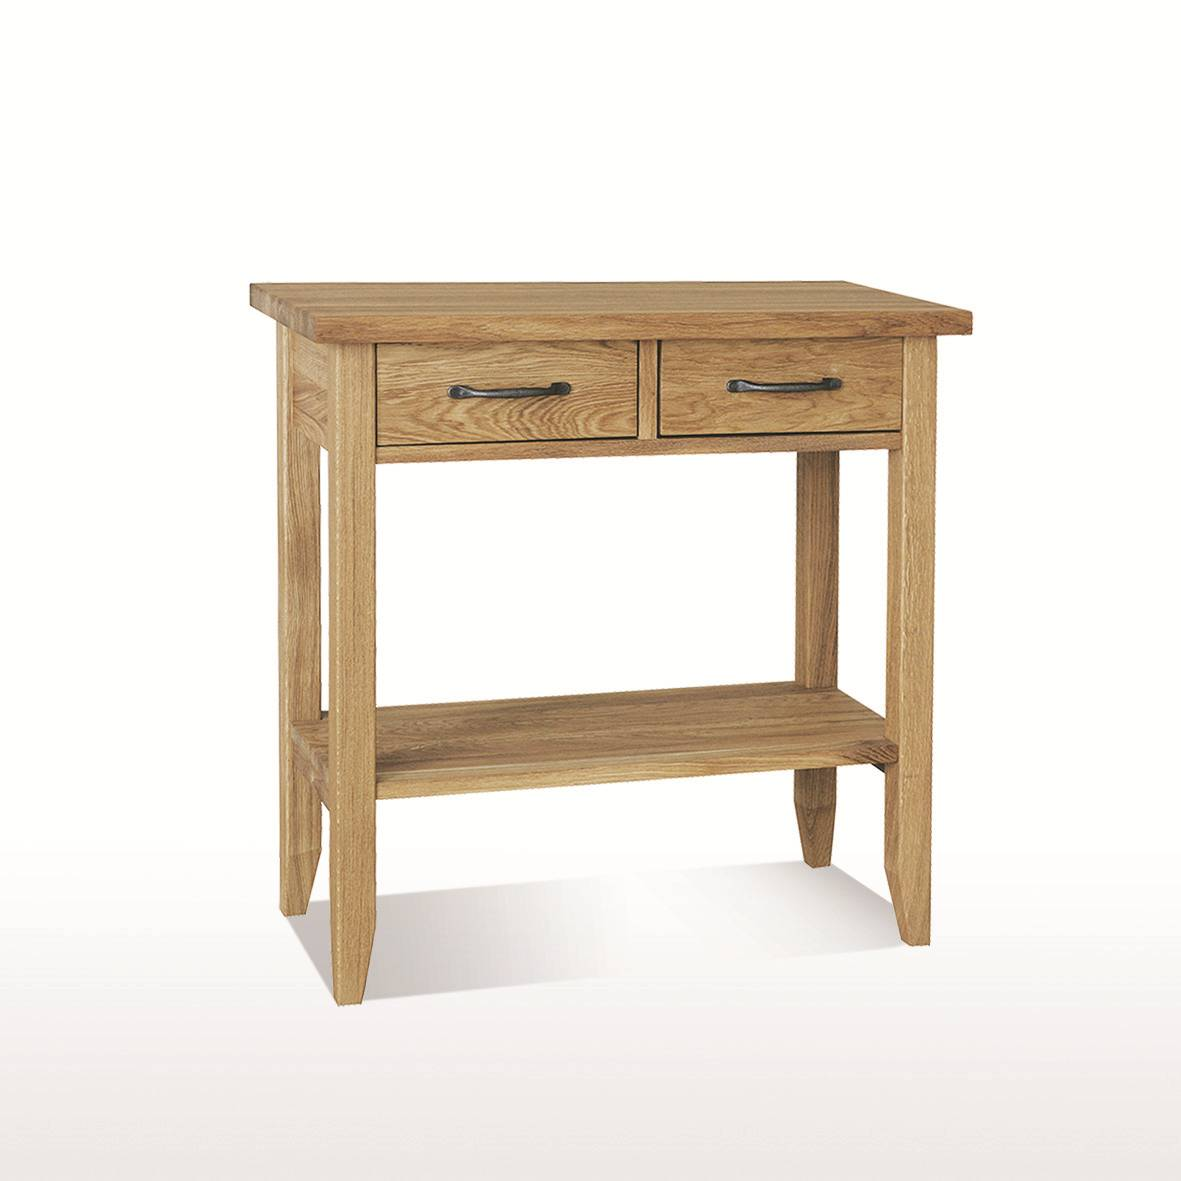 Windsor Dining Console table 2 drawers with shelf  : 3855 from www.hillsfurniturestore.co.uk size 1181 x 1181 jpeg 64kB